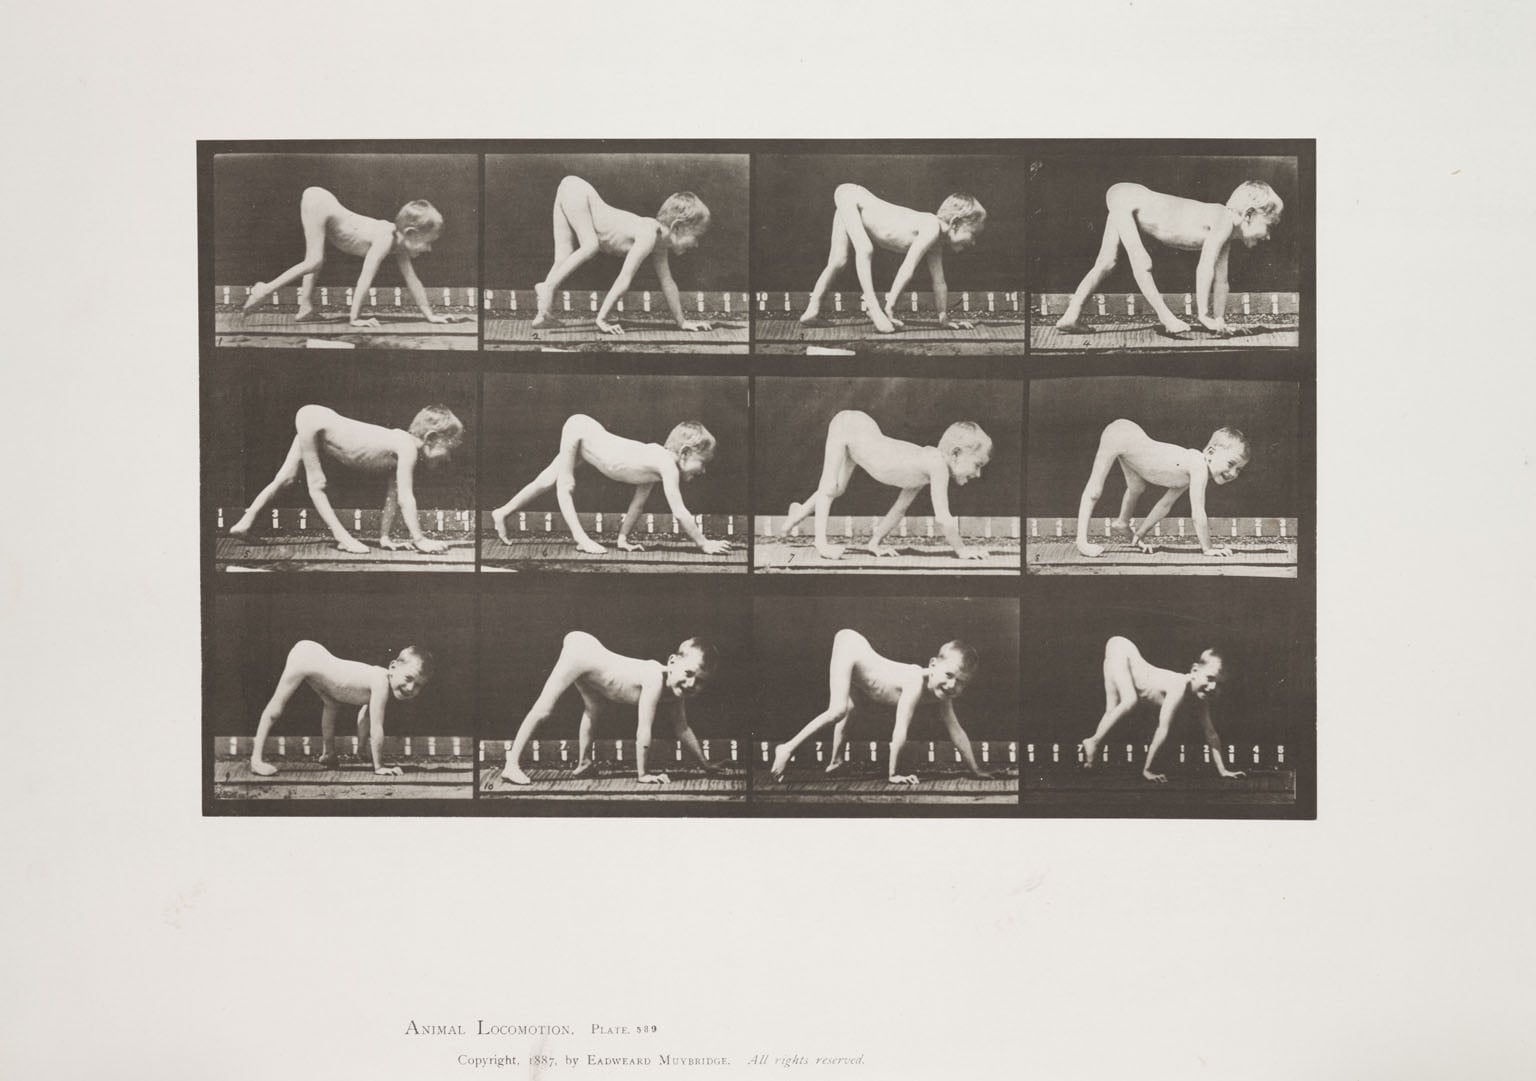 Hand Movements & Plate 530 from Animal Locomotion